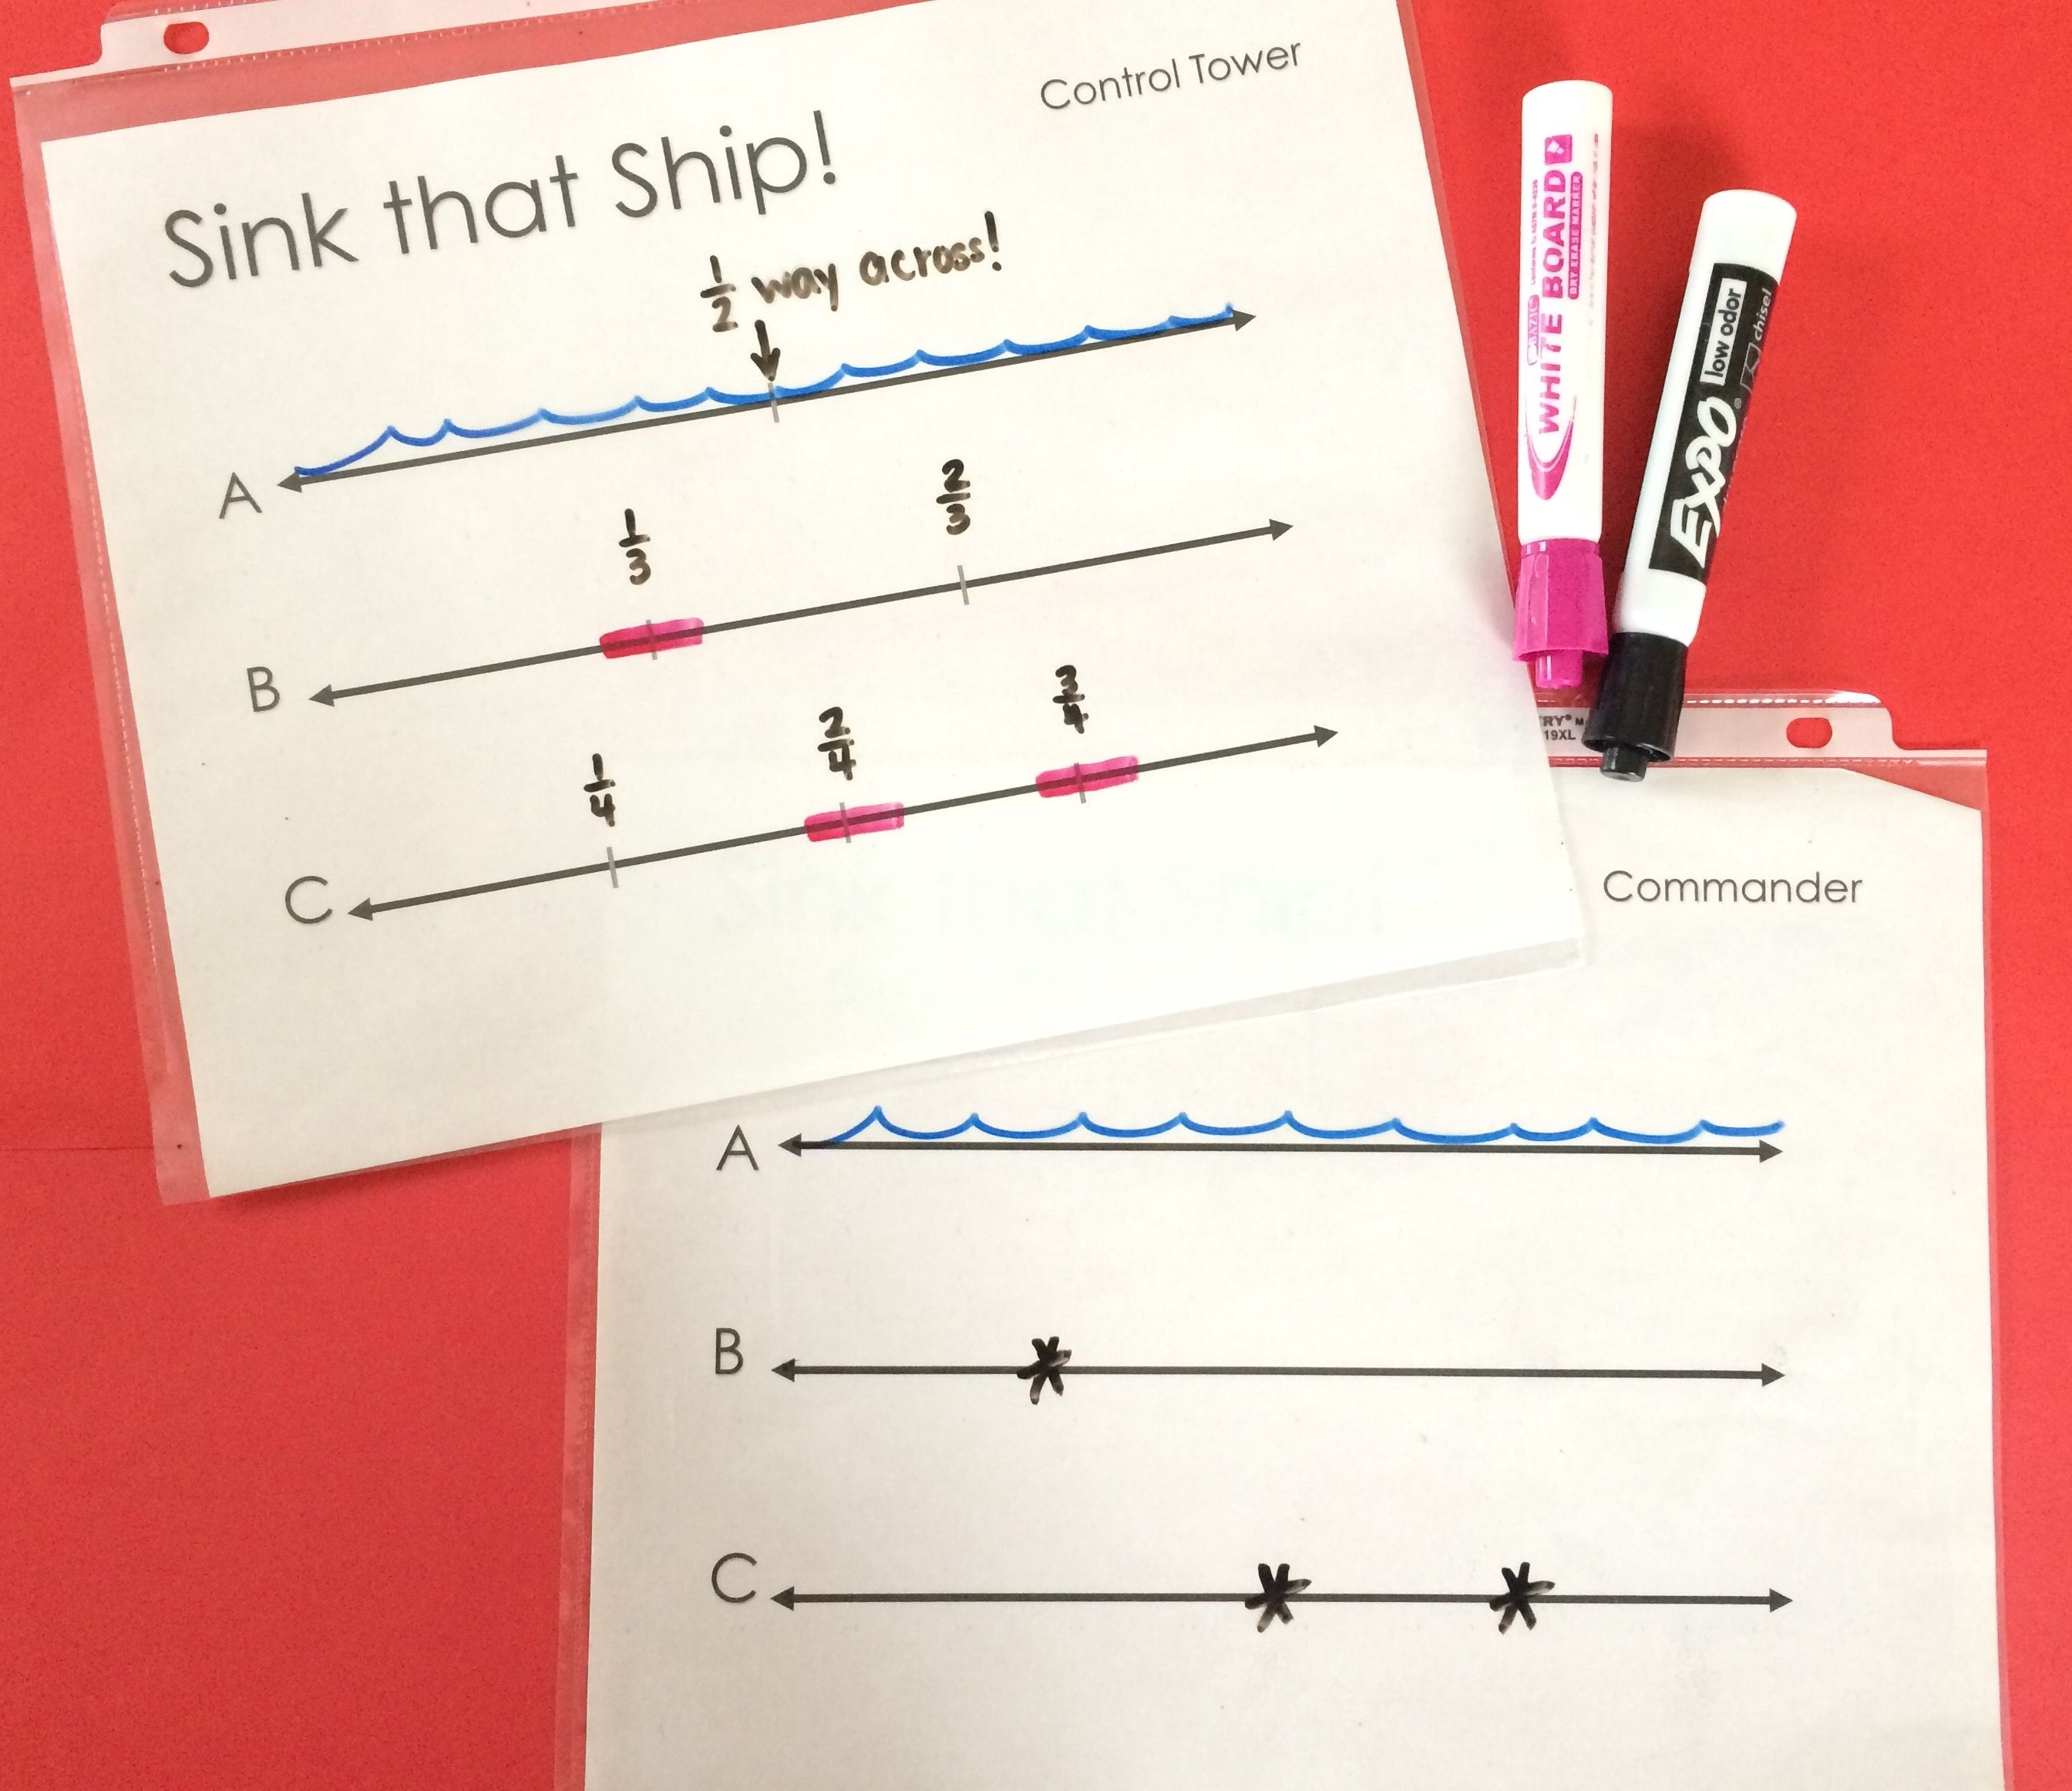 Practice Locating Fractions On A Number Line With Sink That Ship